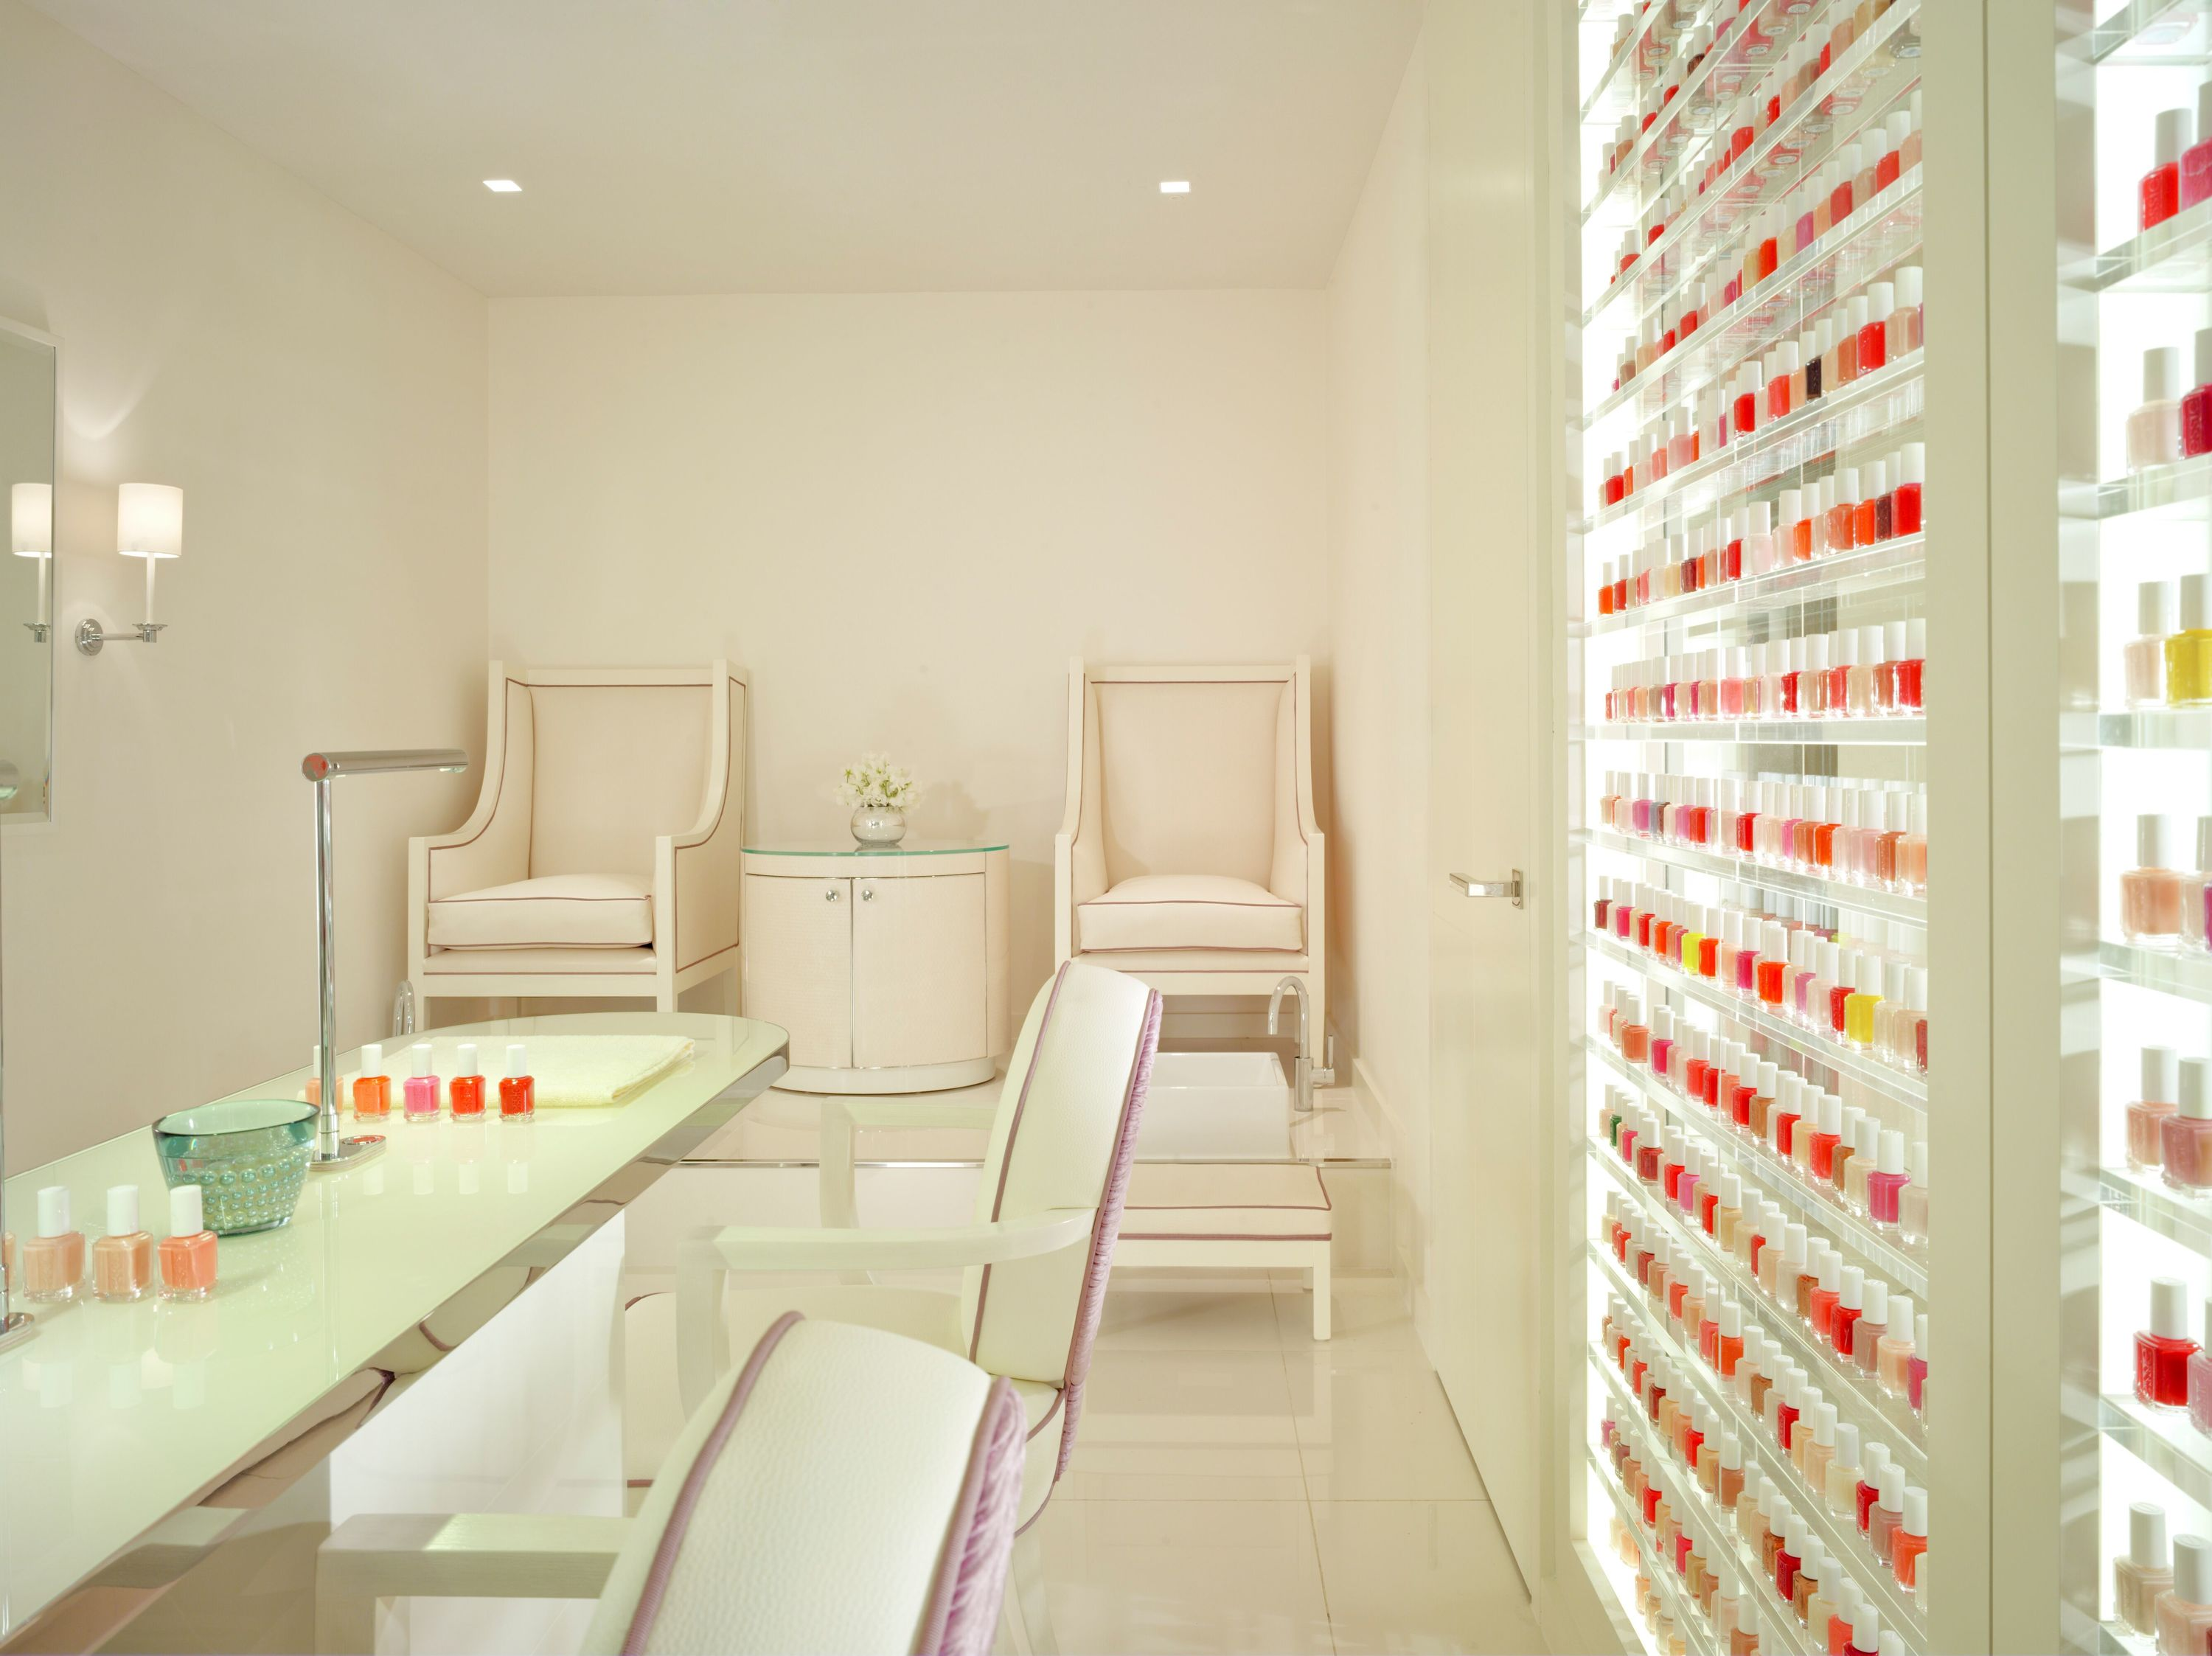 Luxury spas in london london 39 s best spas time out london - Nail salon marylebone ...